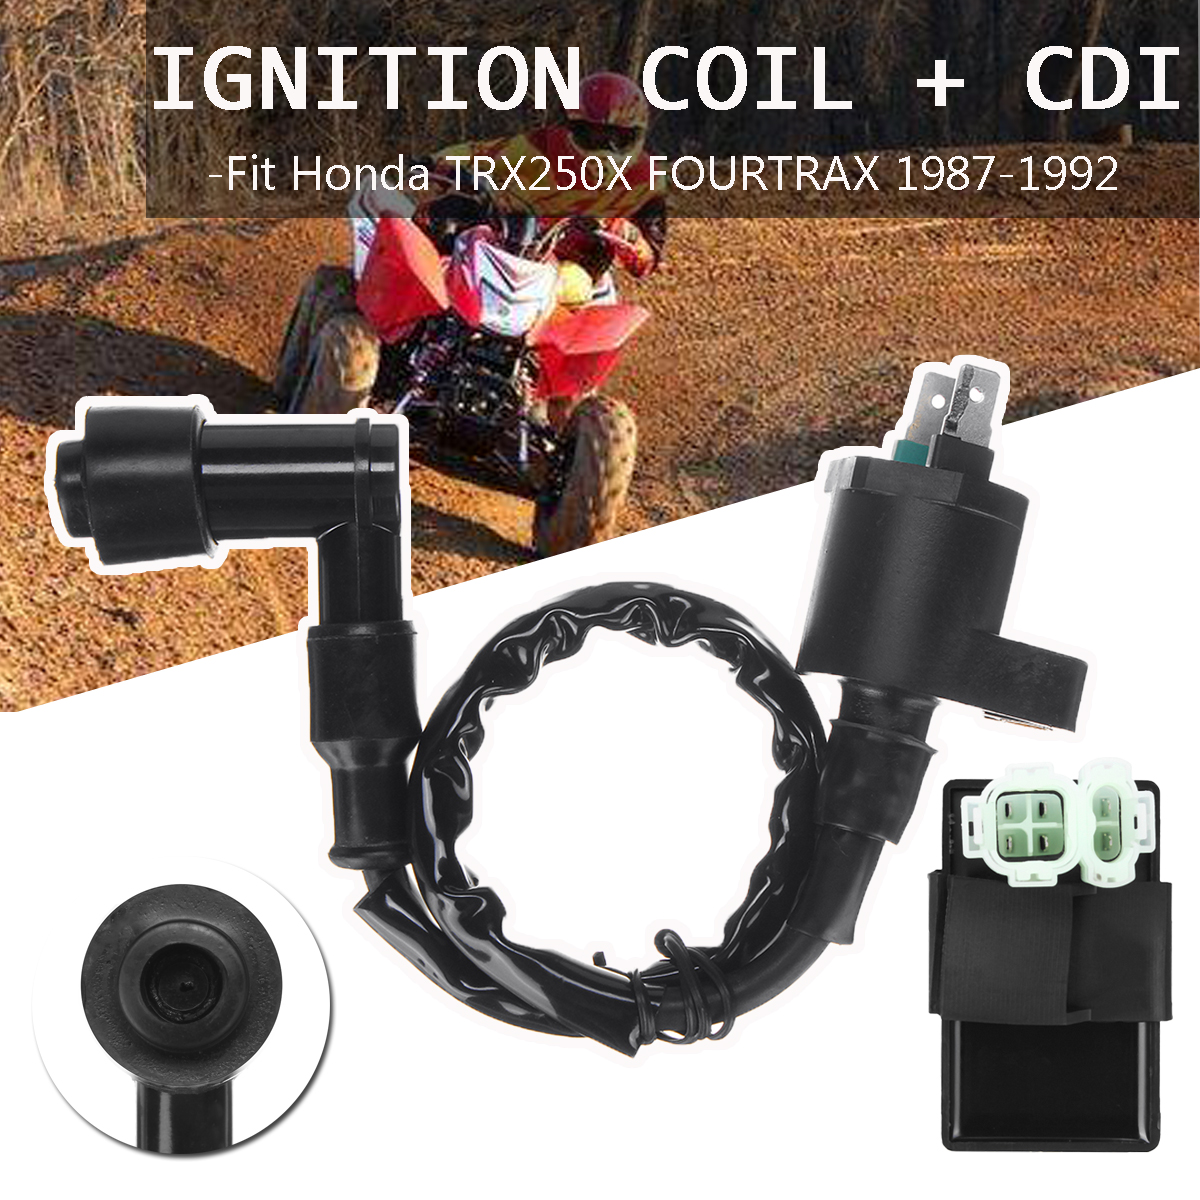 Hot Sale Automtive Ignition Coil Switch System Cdi Car Honda Trx 250 Wiring Connector Lock Barrel Plug Cable Wire For Trx250x Fourtrax 87 92atv